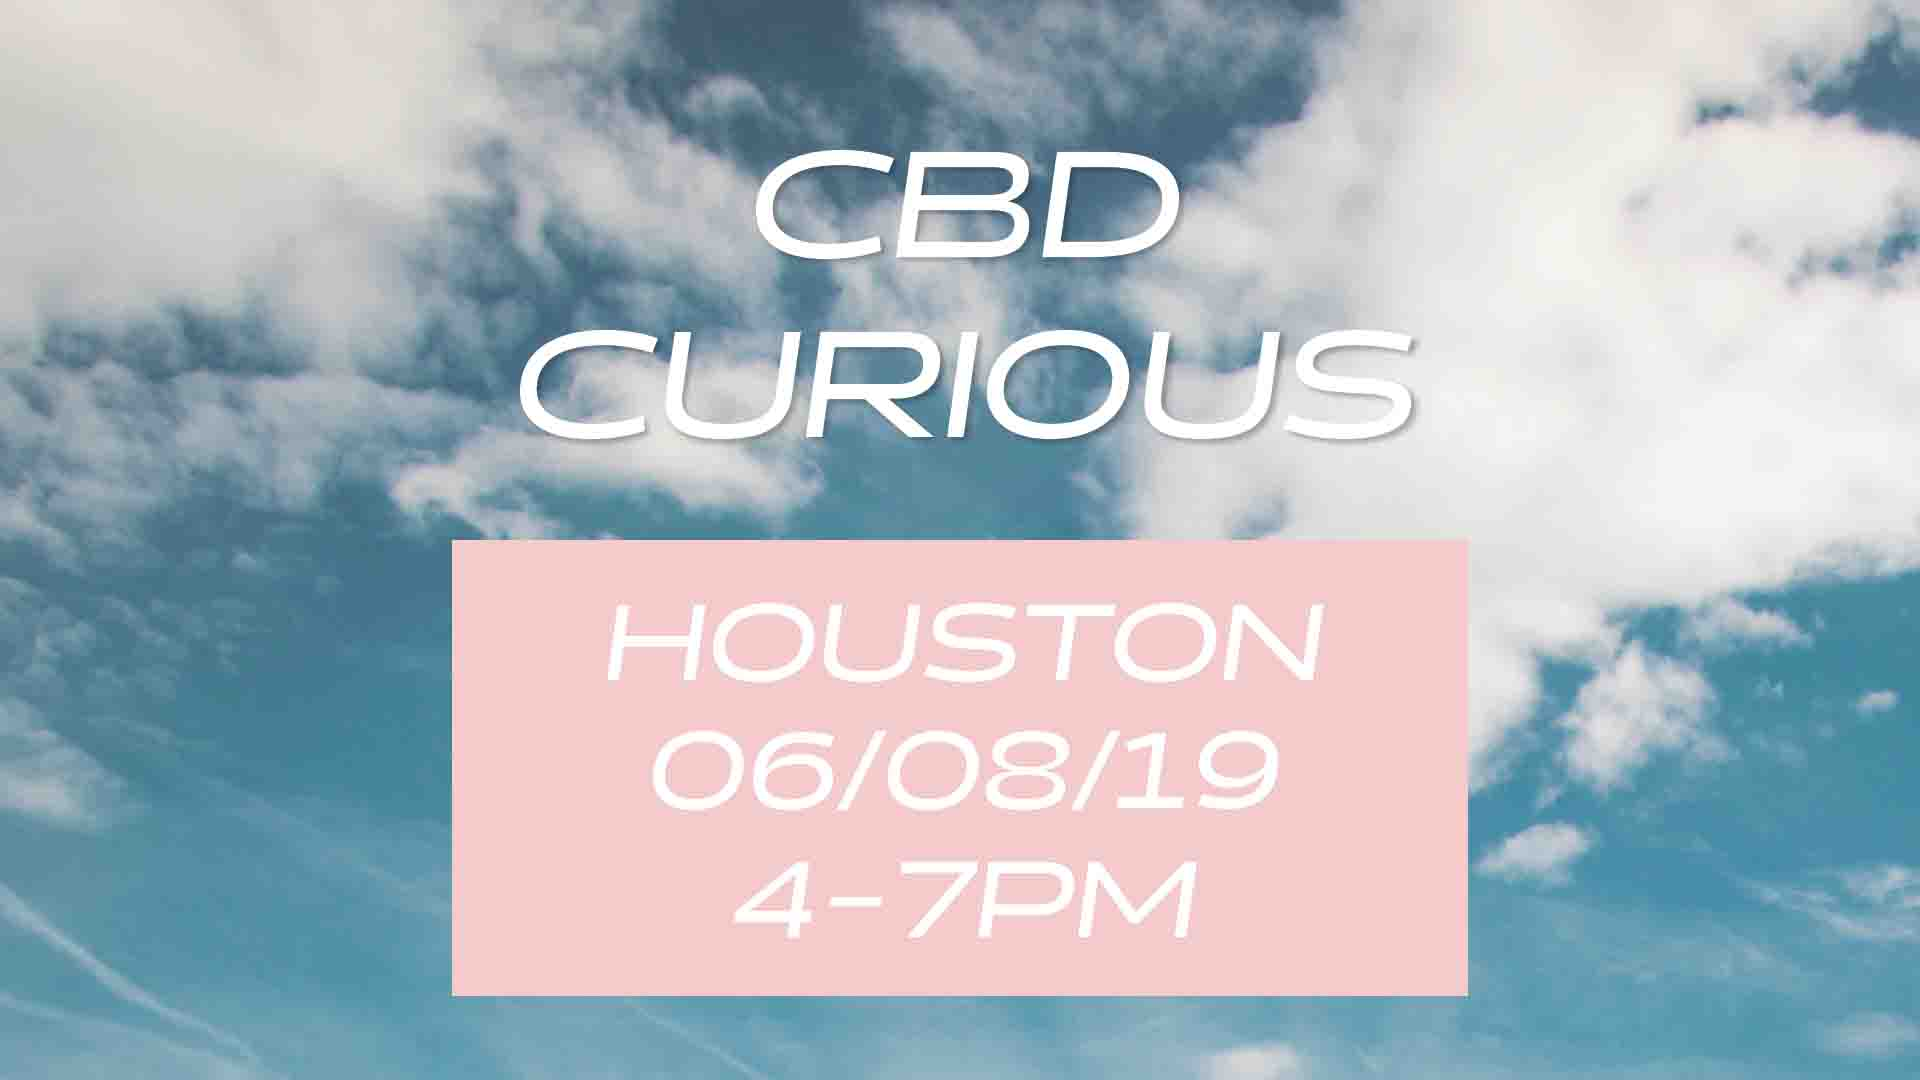 CBD Curious - Houston